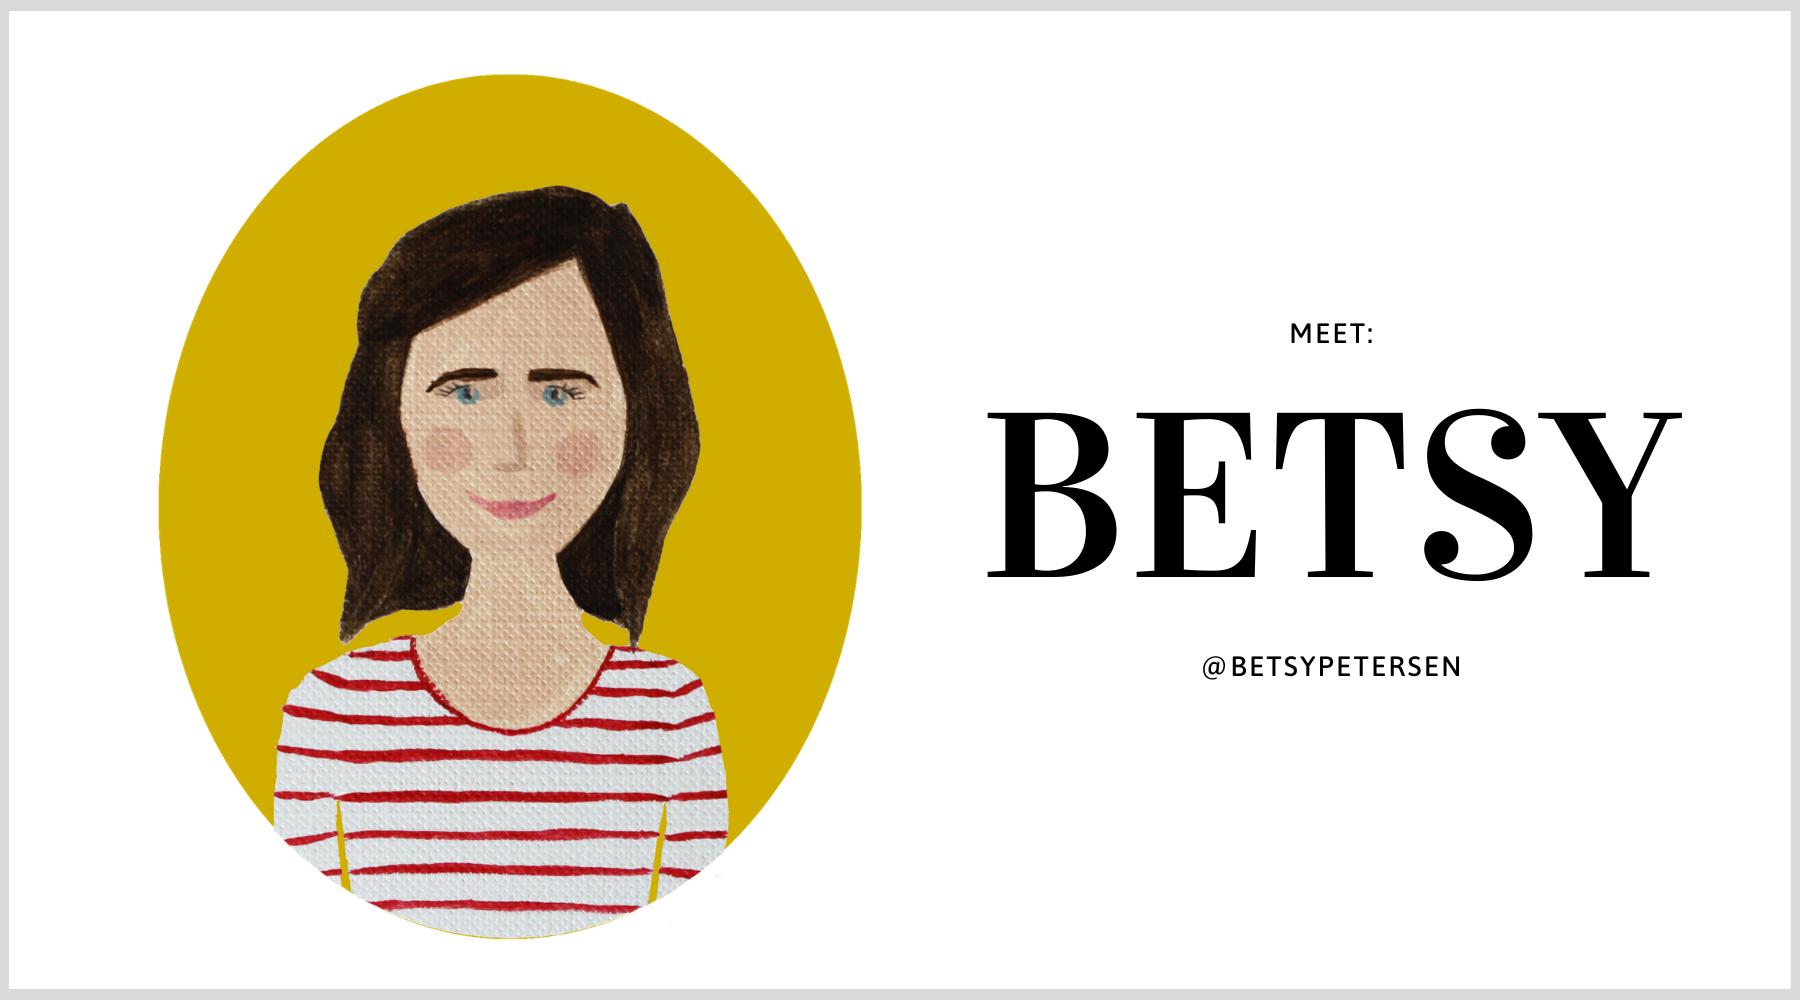 Our chat with Betsy Petersen